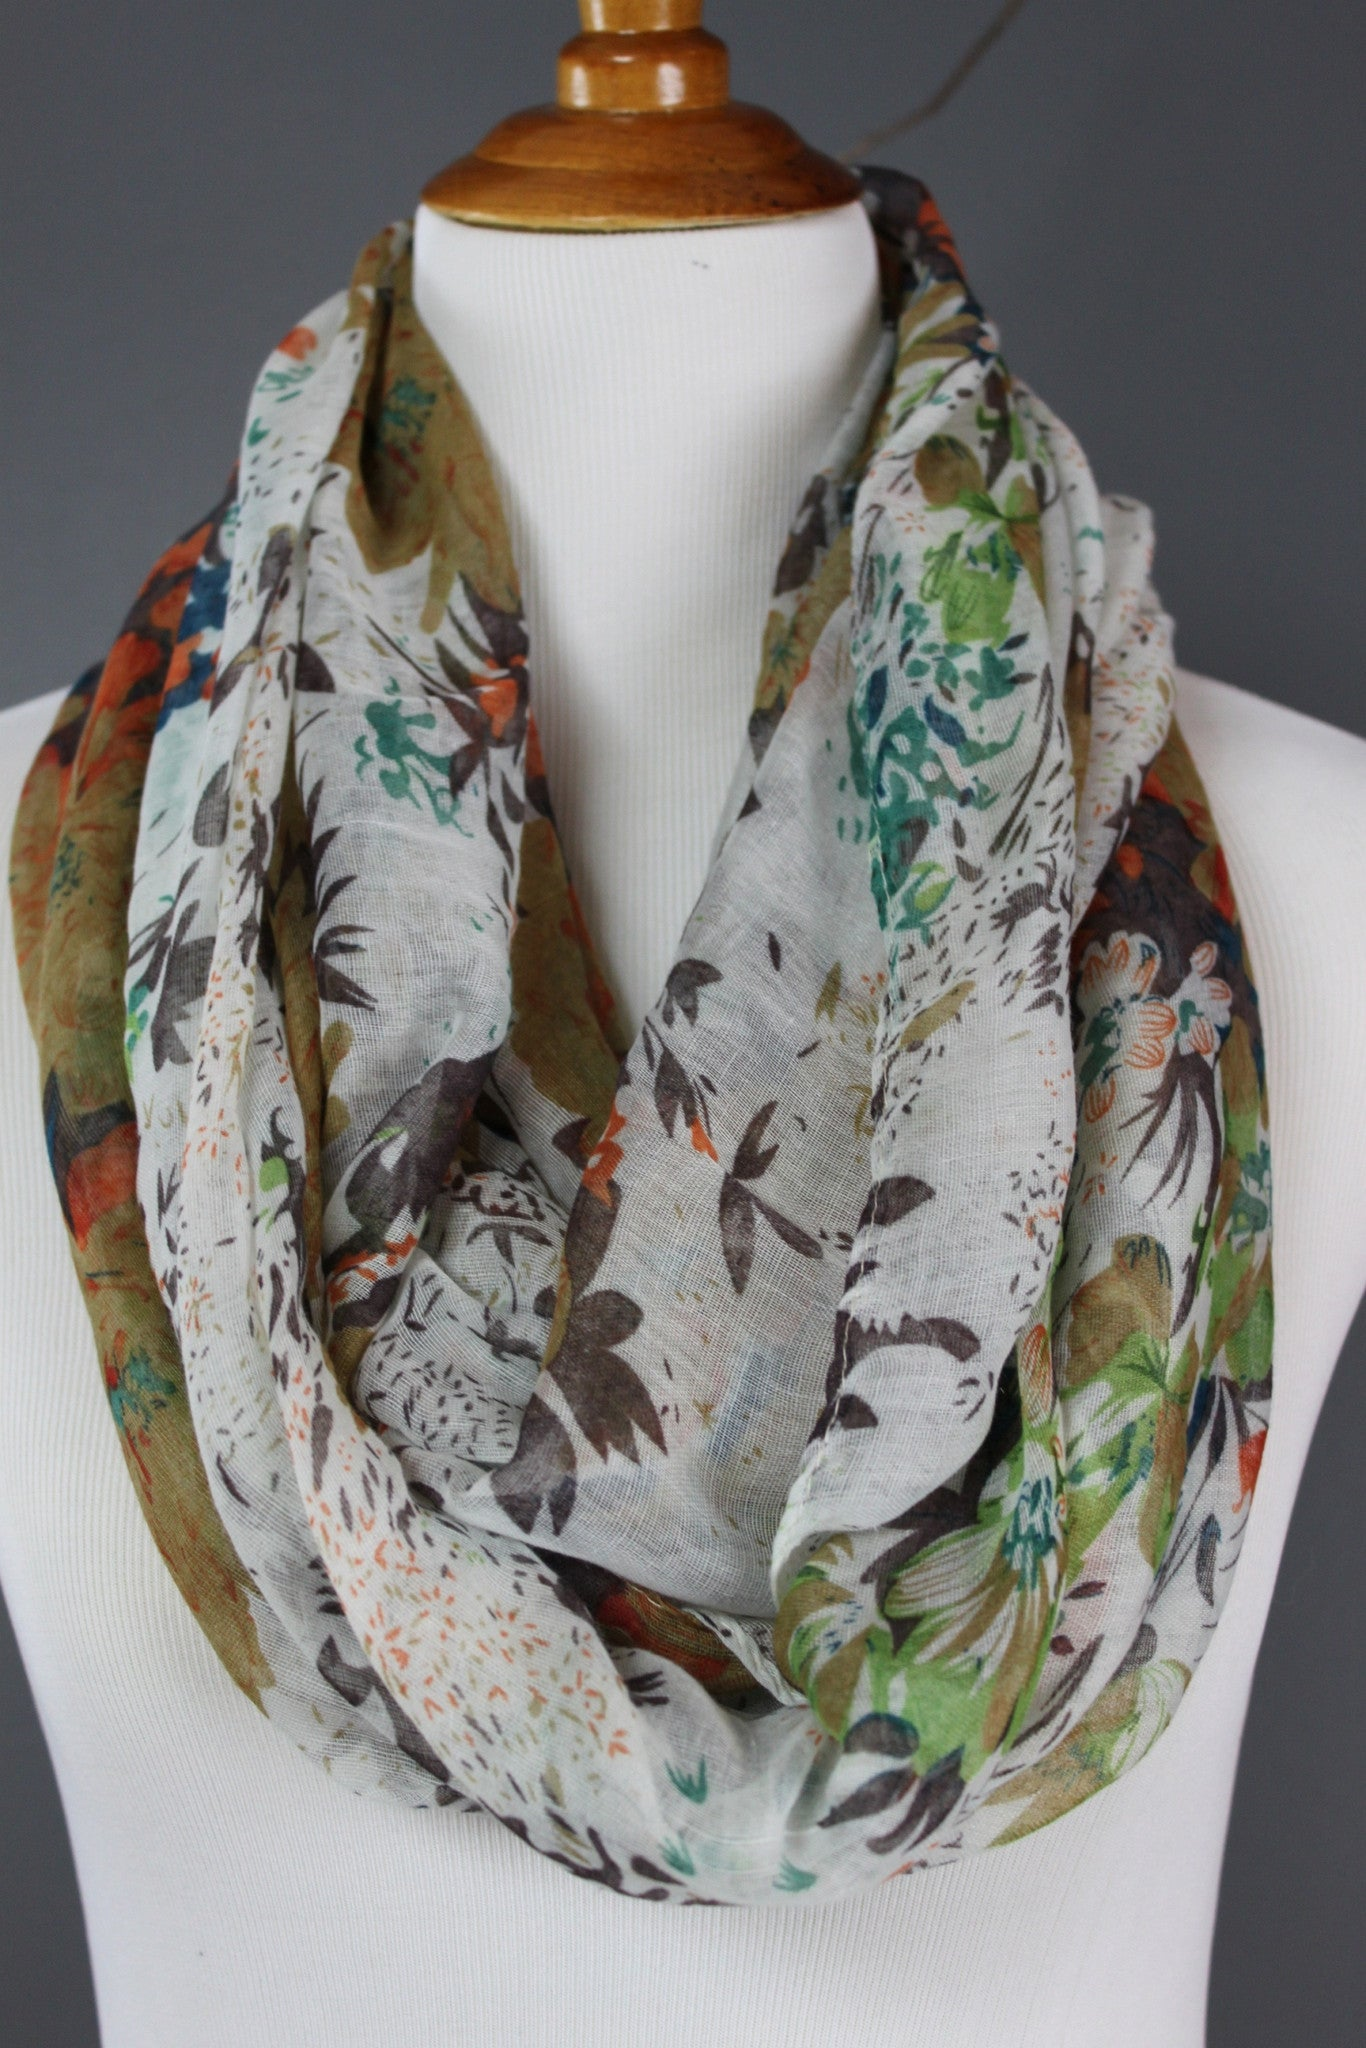 Enchanted Forest - Floral Print Infinity Scarf